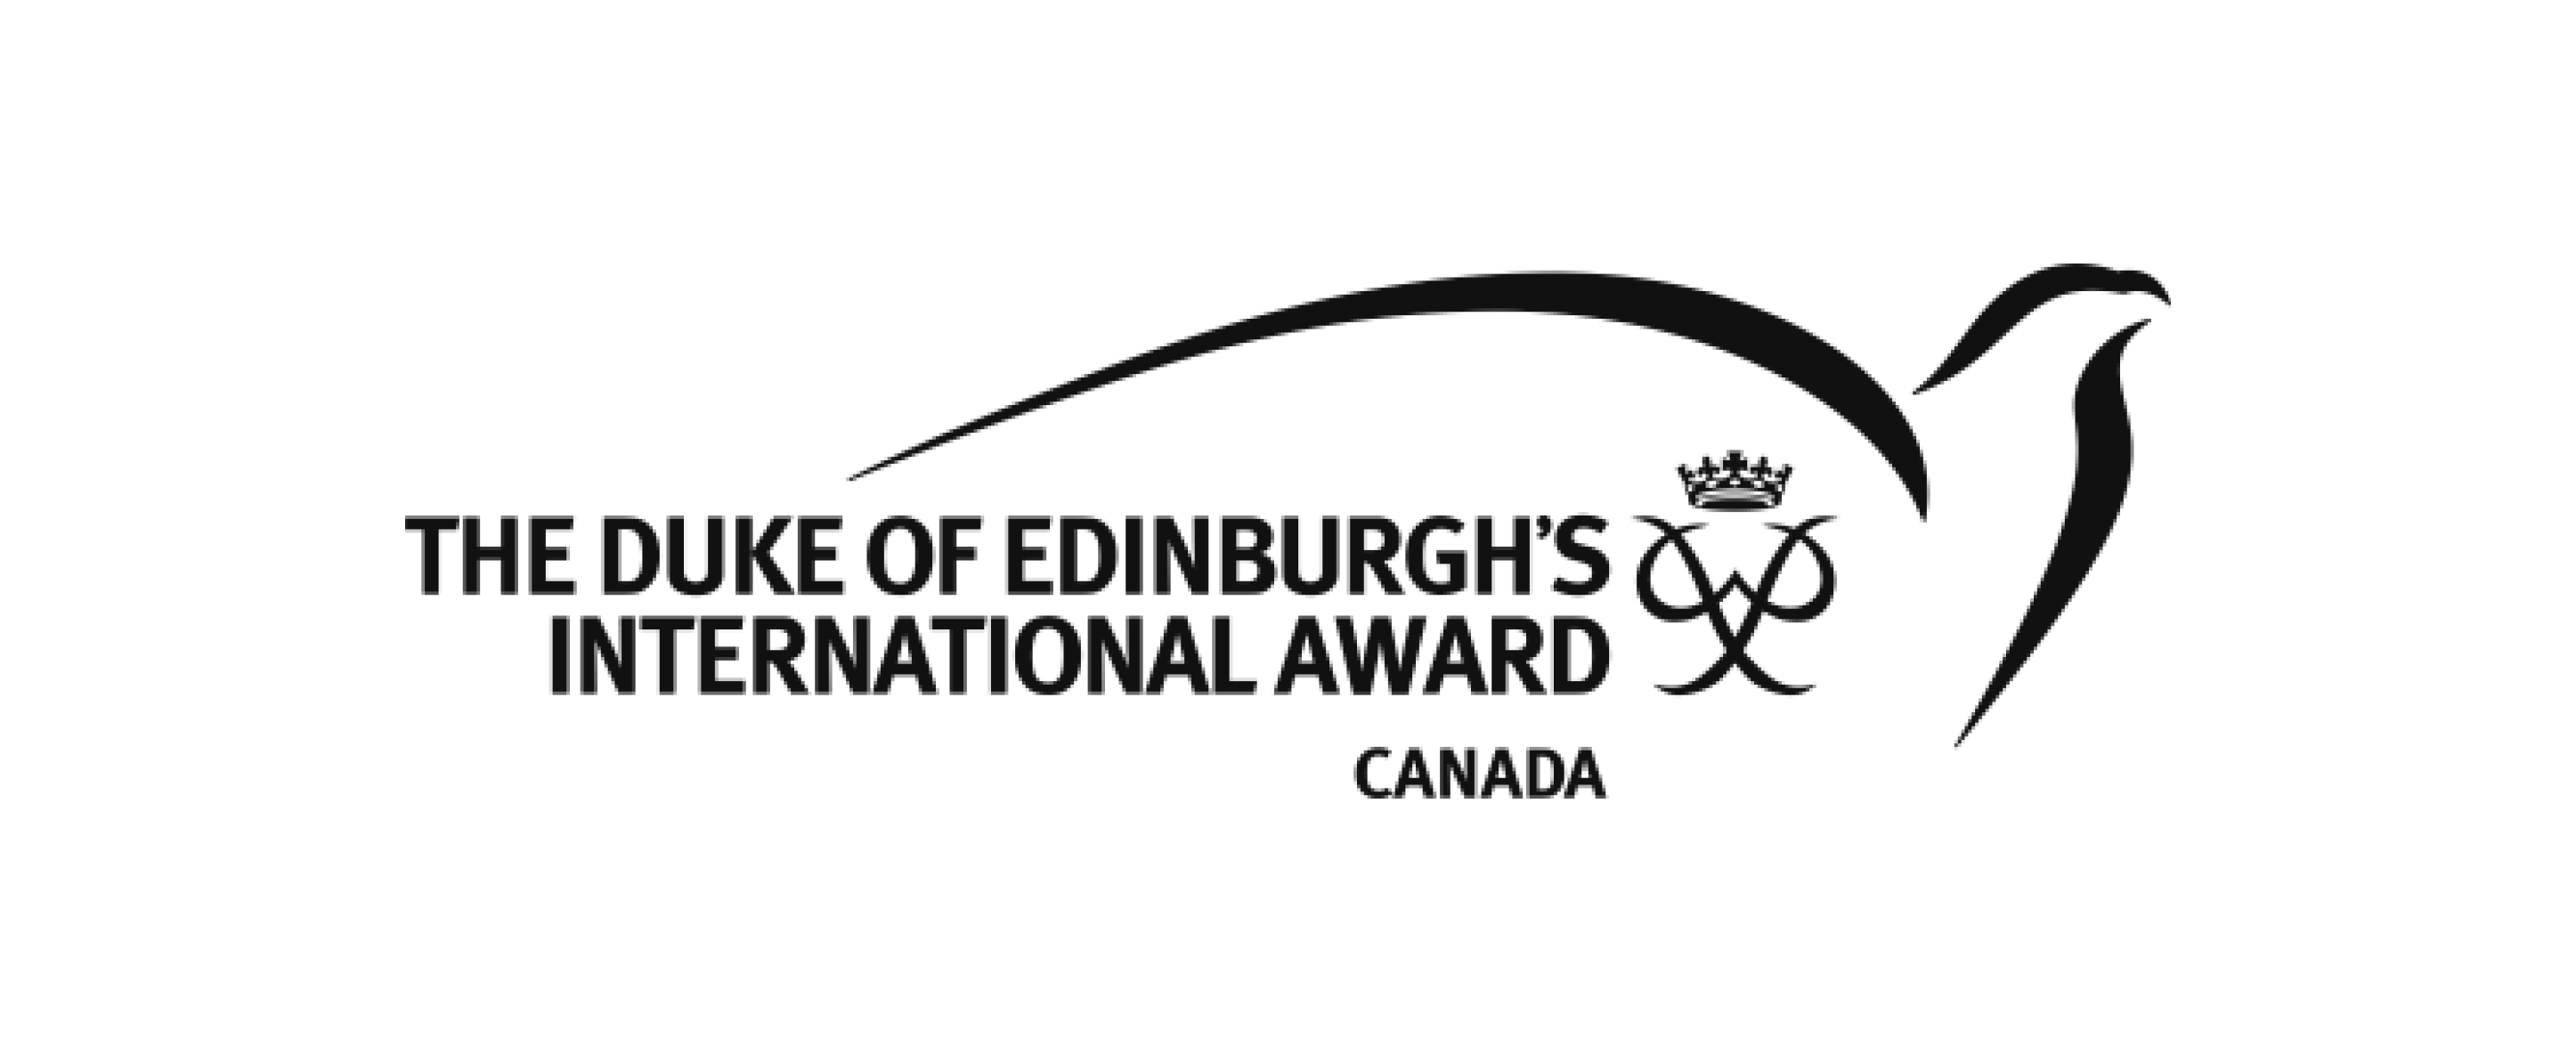 THE DUKE OF EDINBURGH'S AWARD CANADA